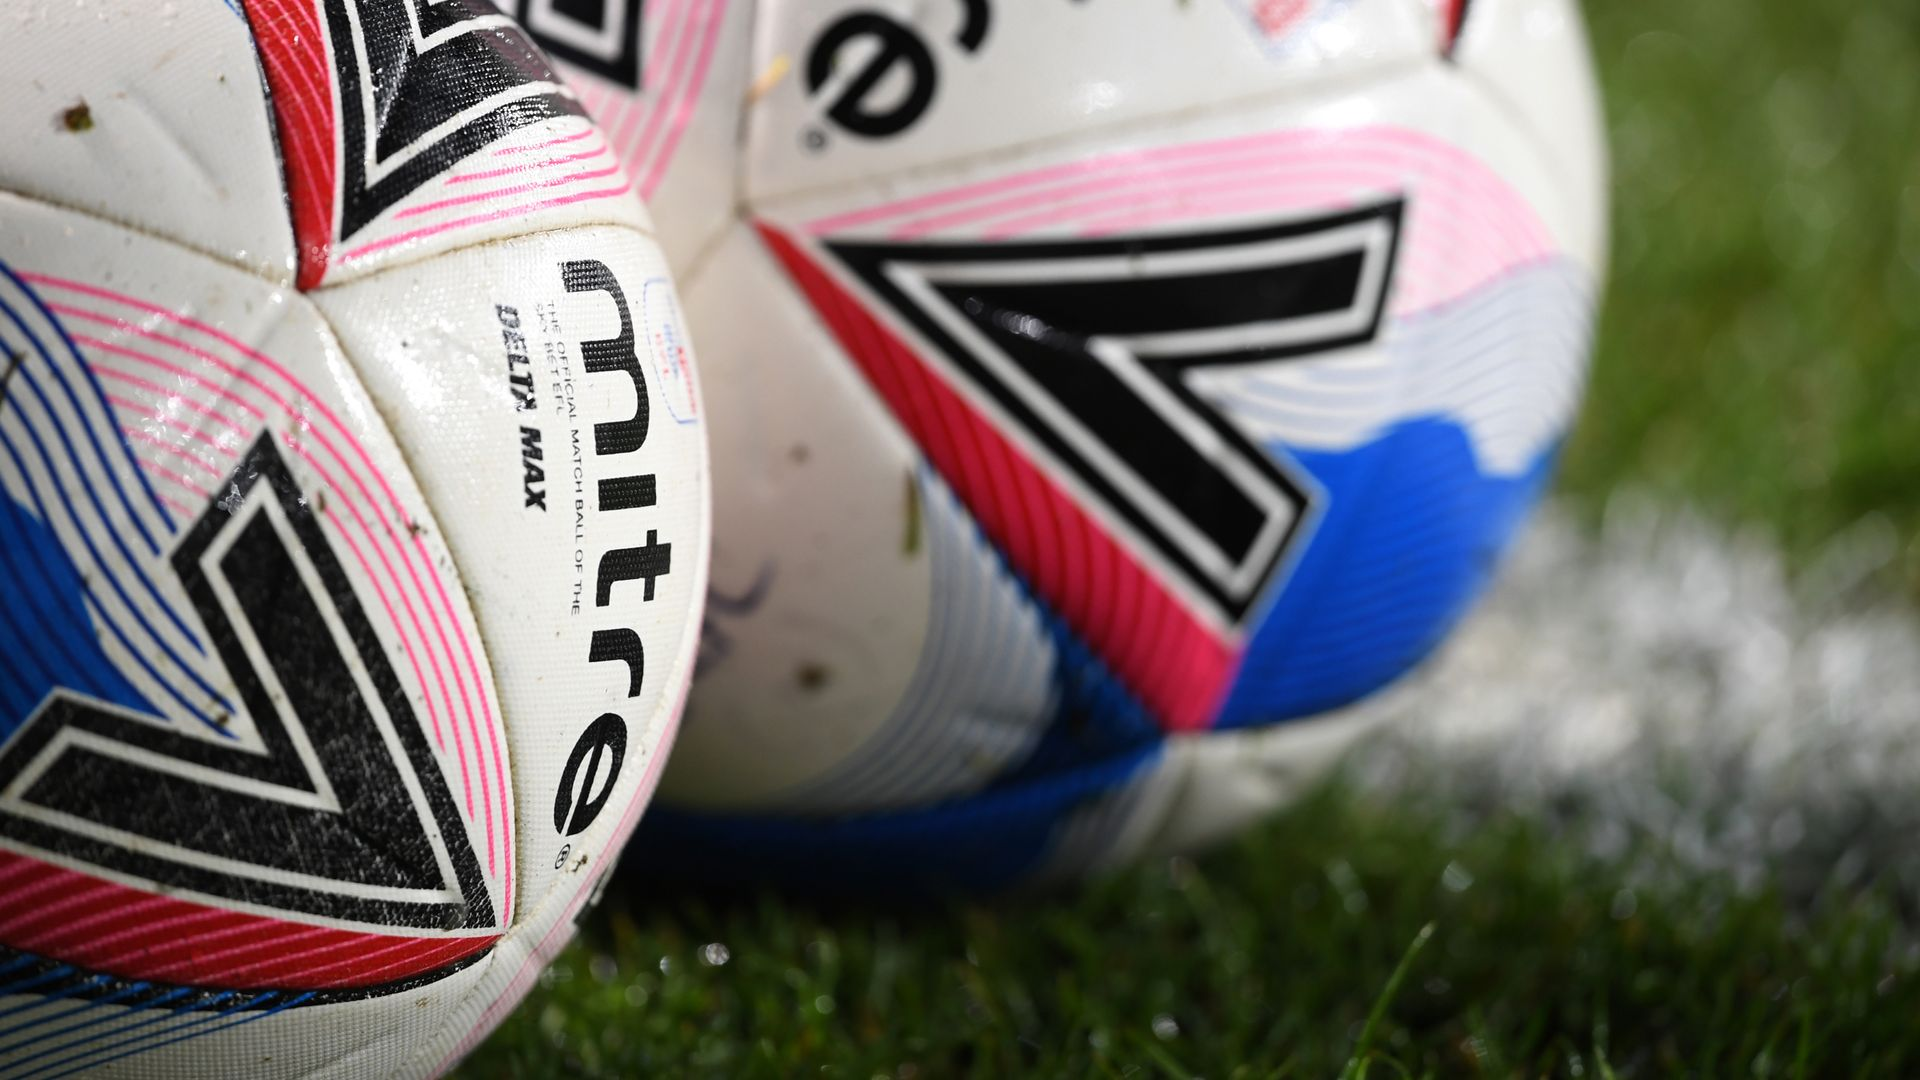 Teenage girls at greater risk of concussions, study finds